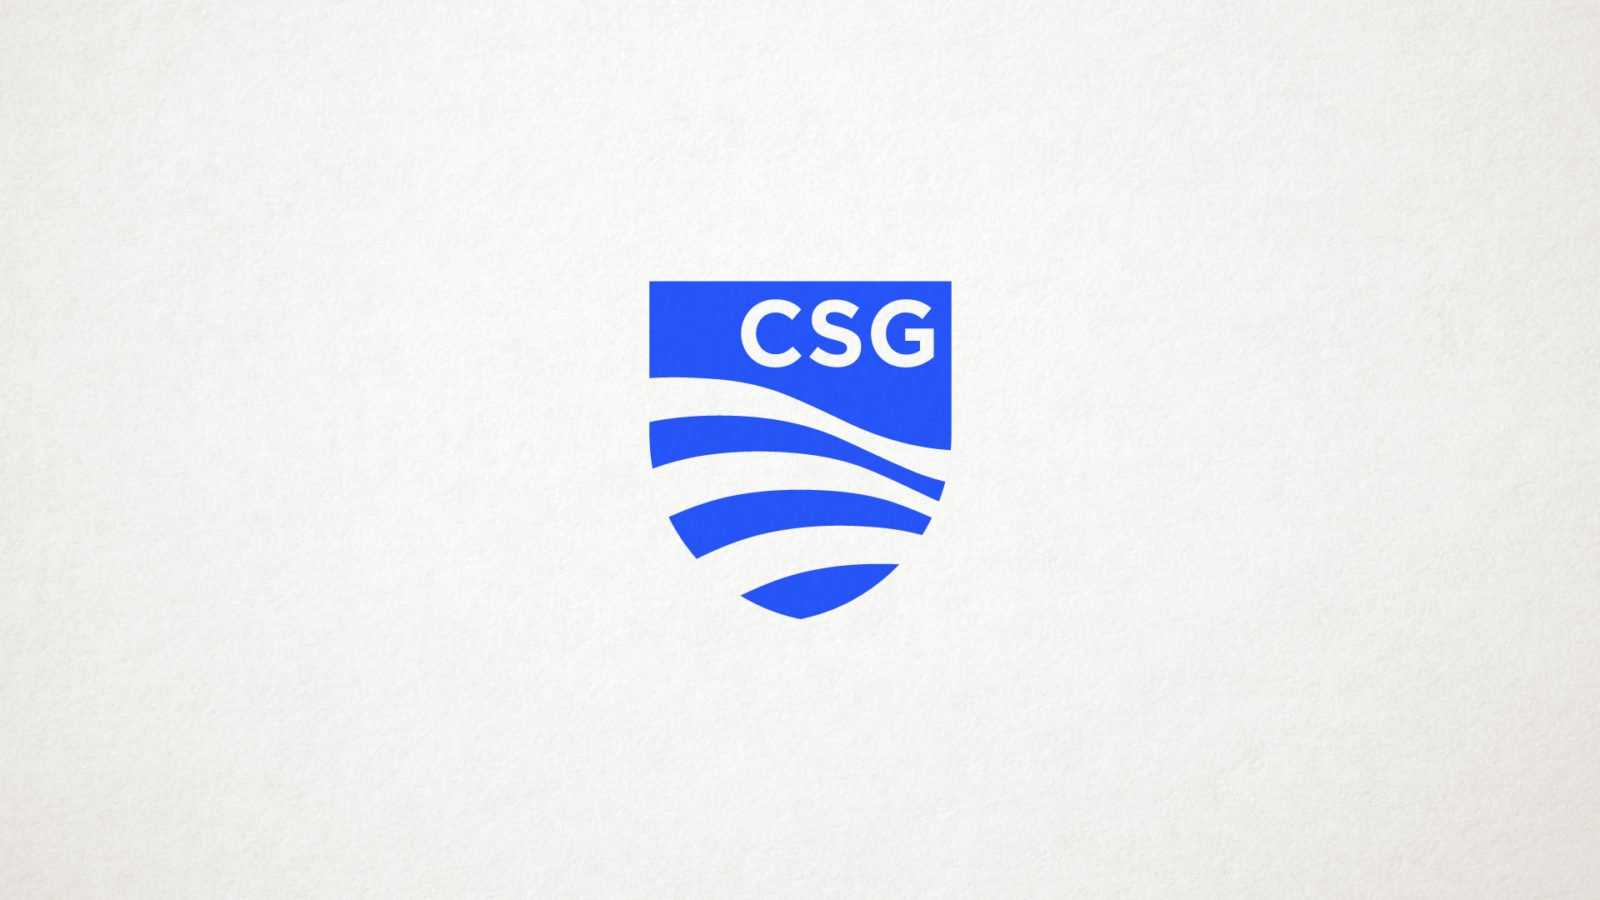 Brand identity for The Council of State Governments